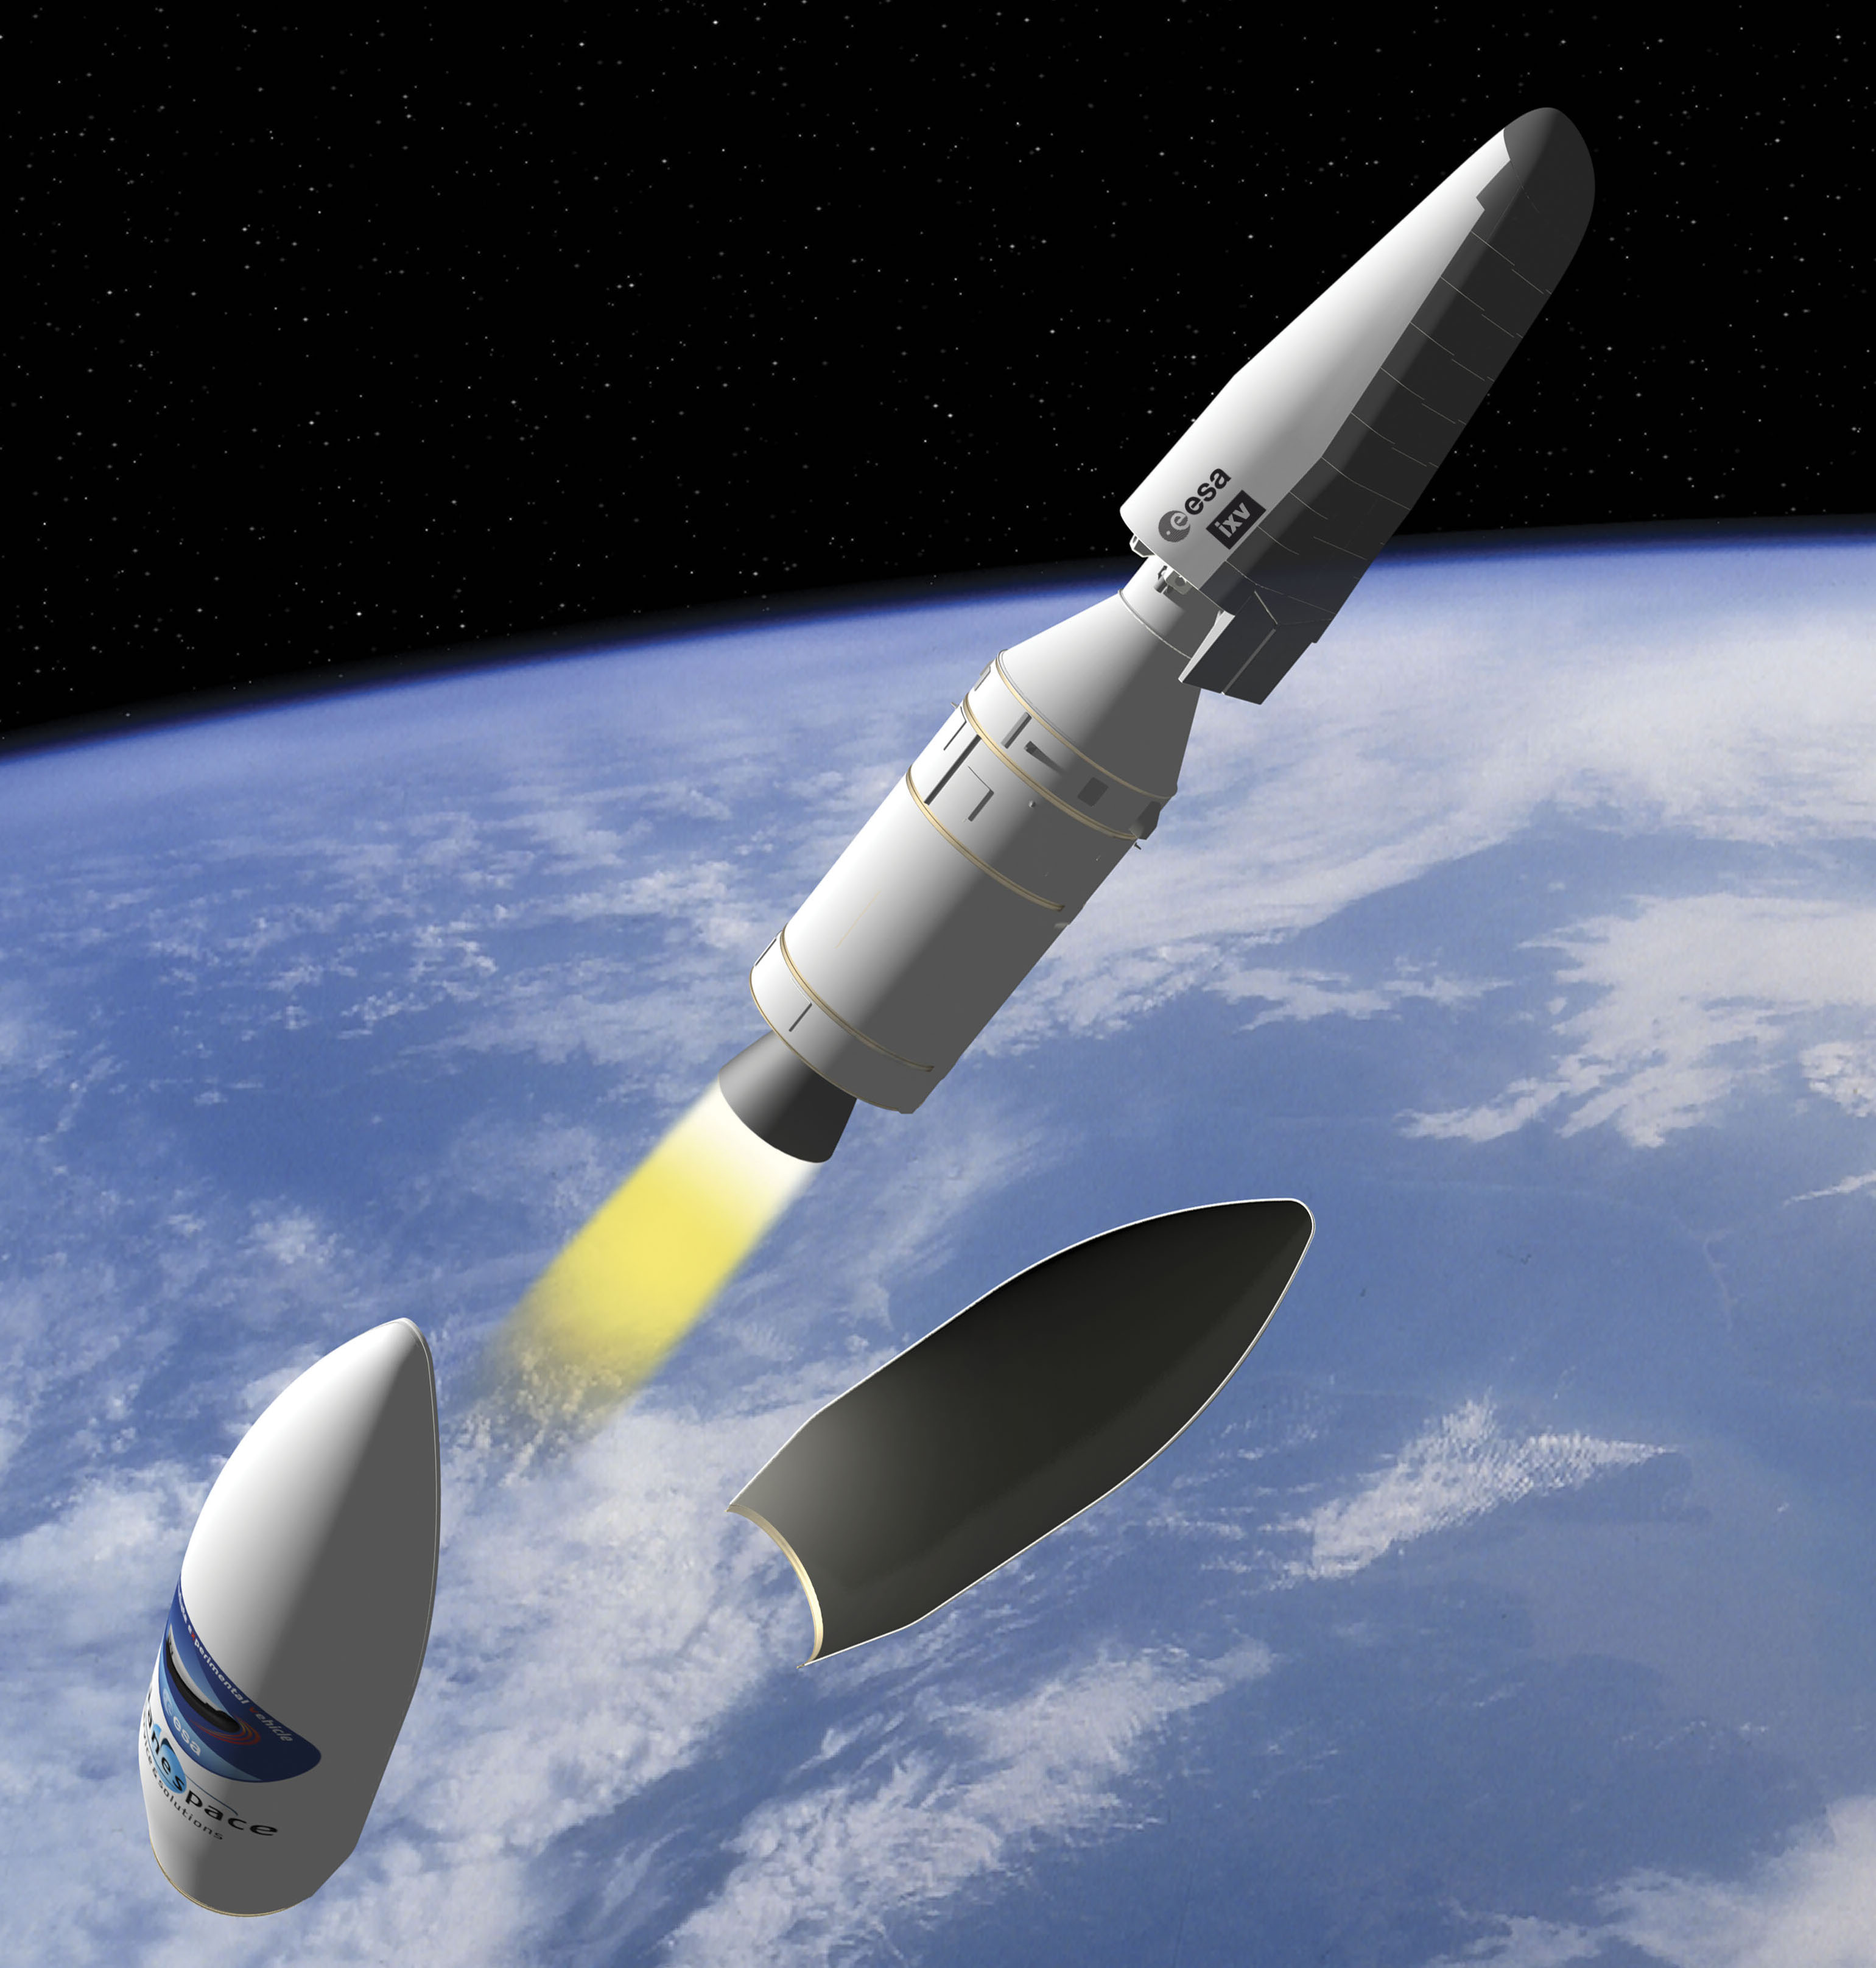 The Vega's 8.5-foot-diameter payload fairing is released as the rocket ascends into  space.